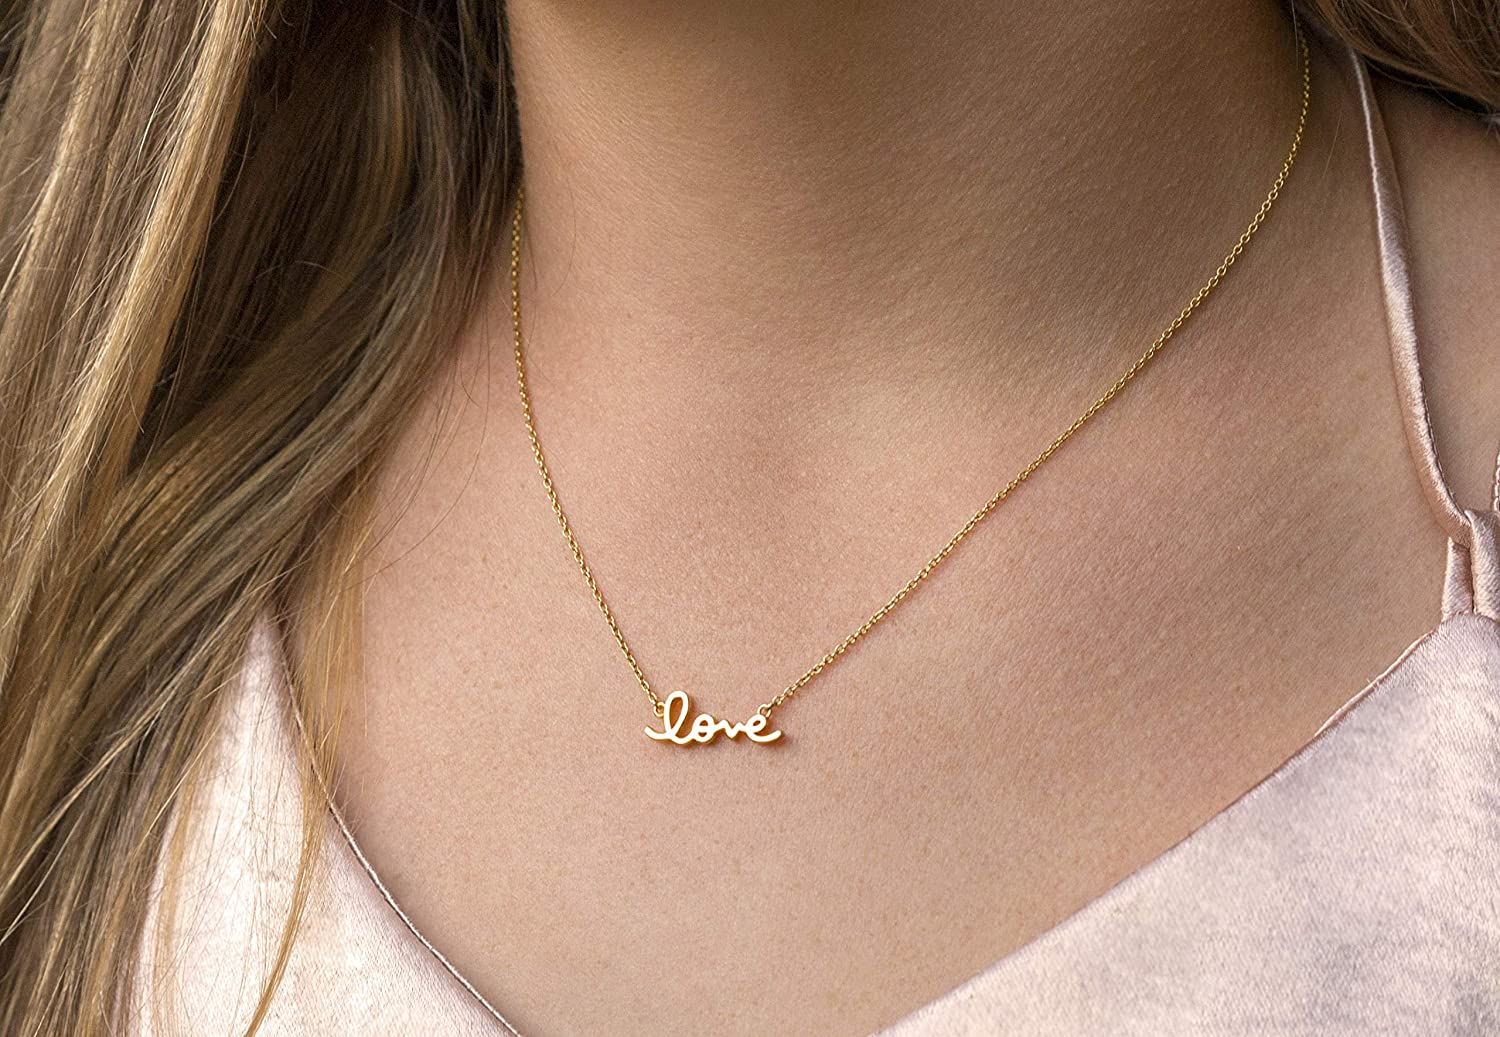 LOVE bubble font Engraved Disc Necklace 24k Gold or 925 Sterling Silver Chain Pretty Valentine/'s Jewelry Free Shipping